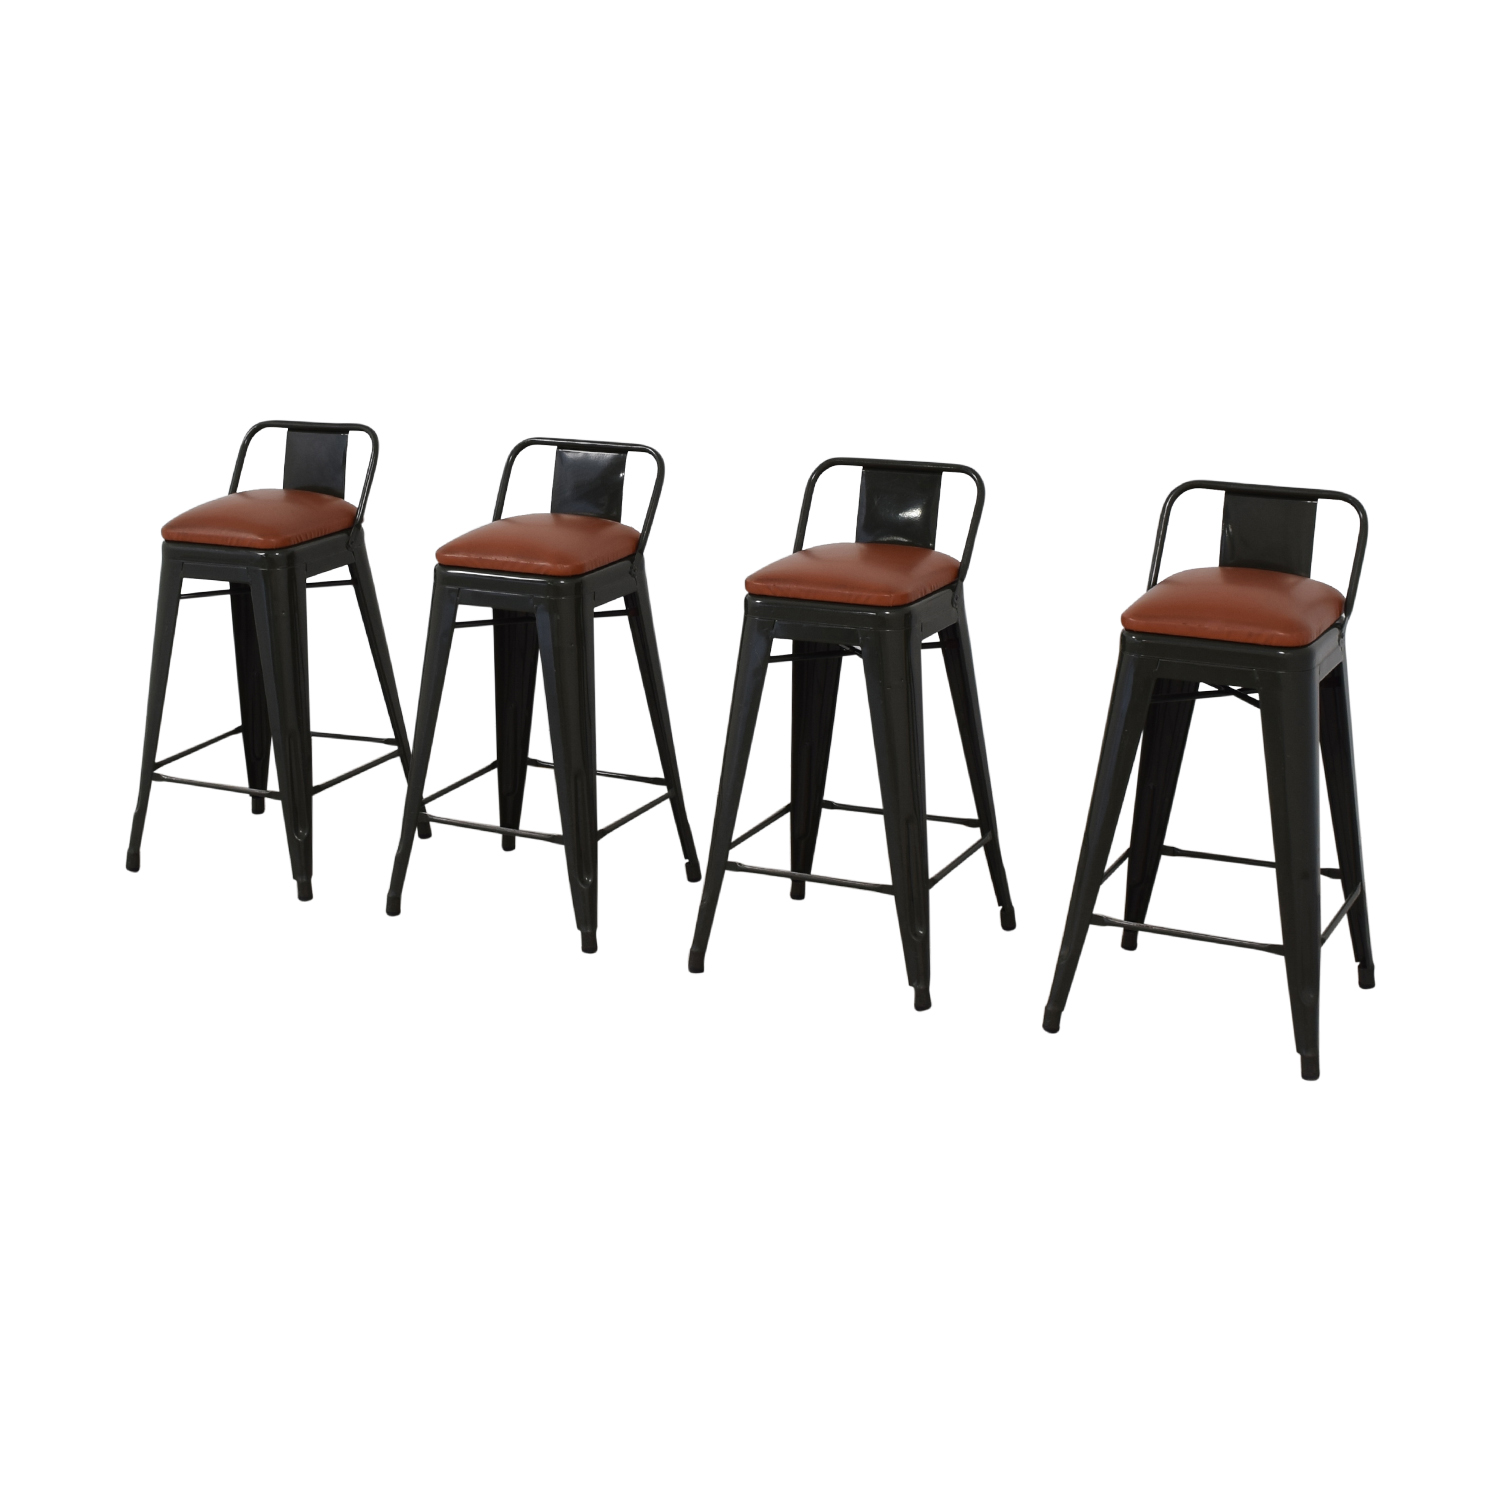 Tolix Industrial Bar Stools sale